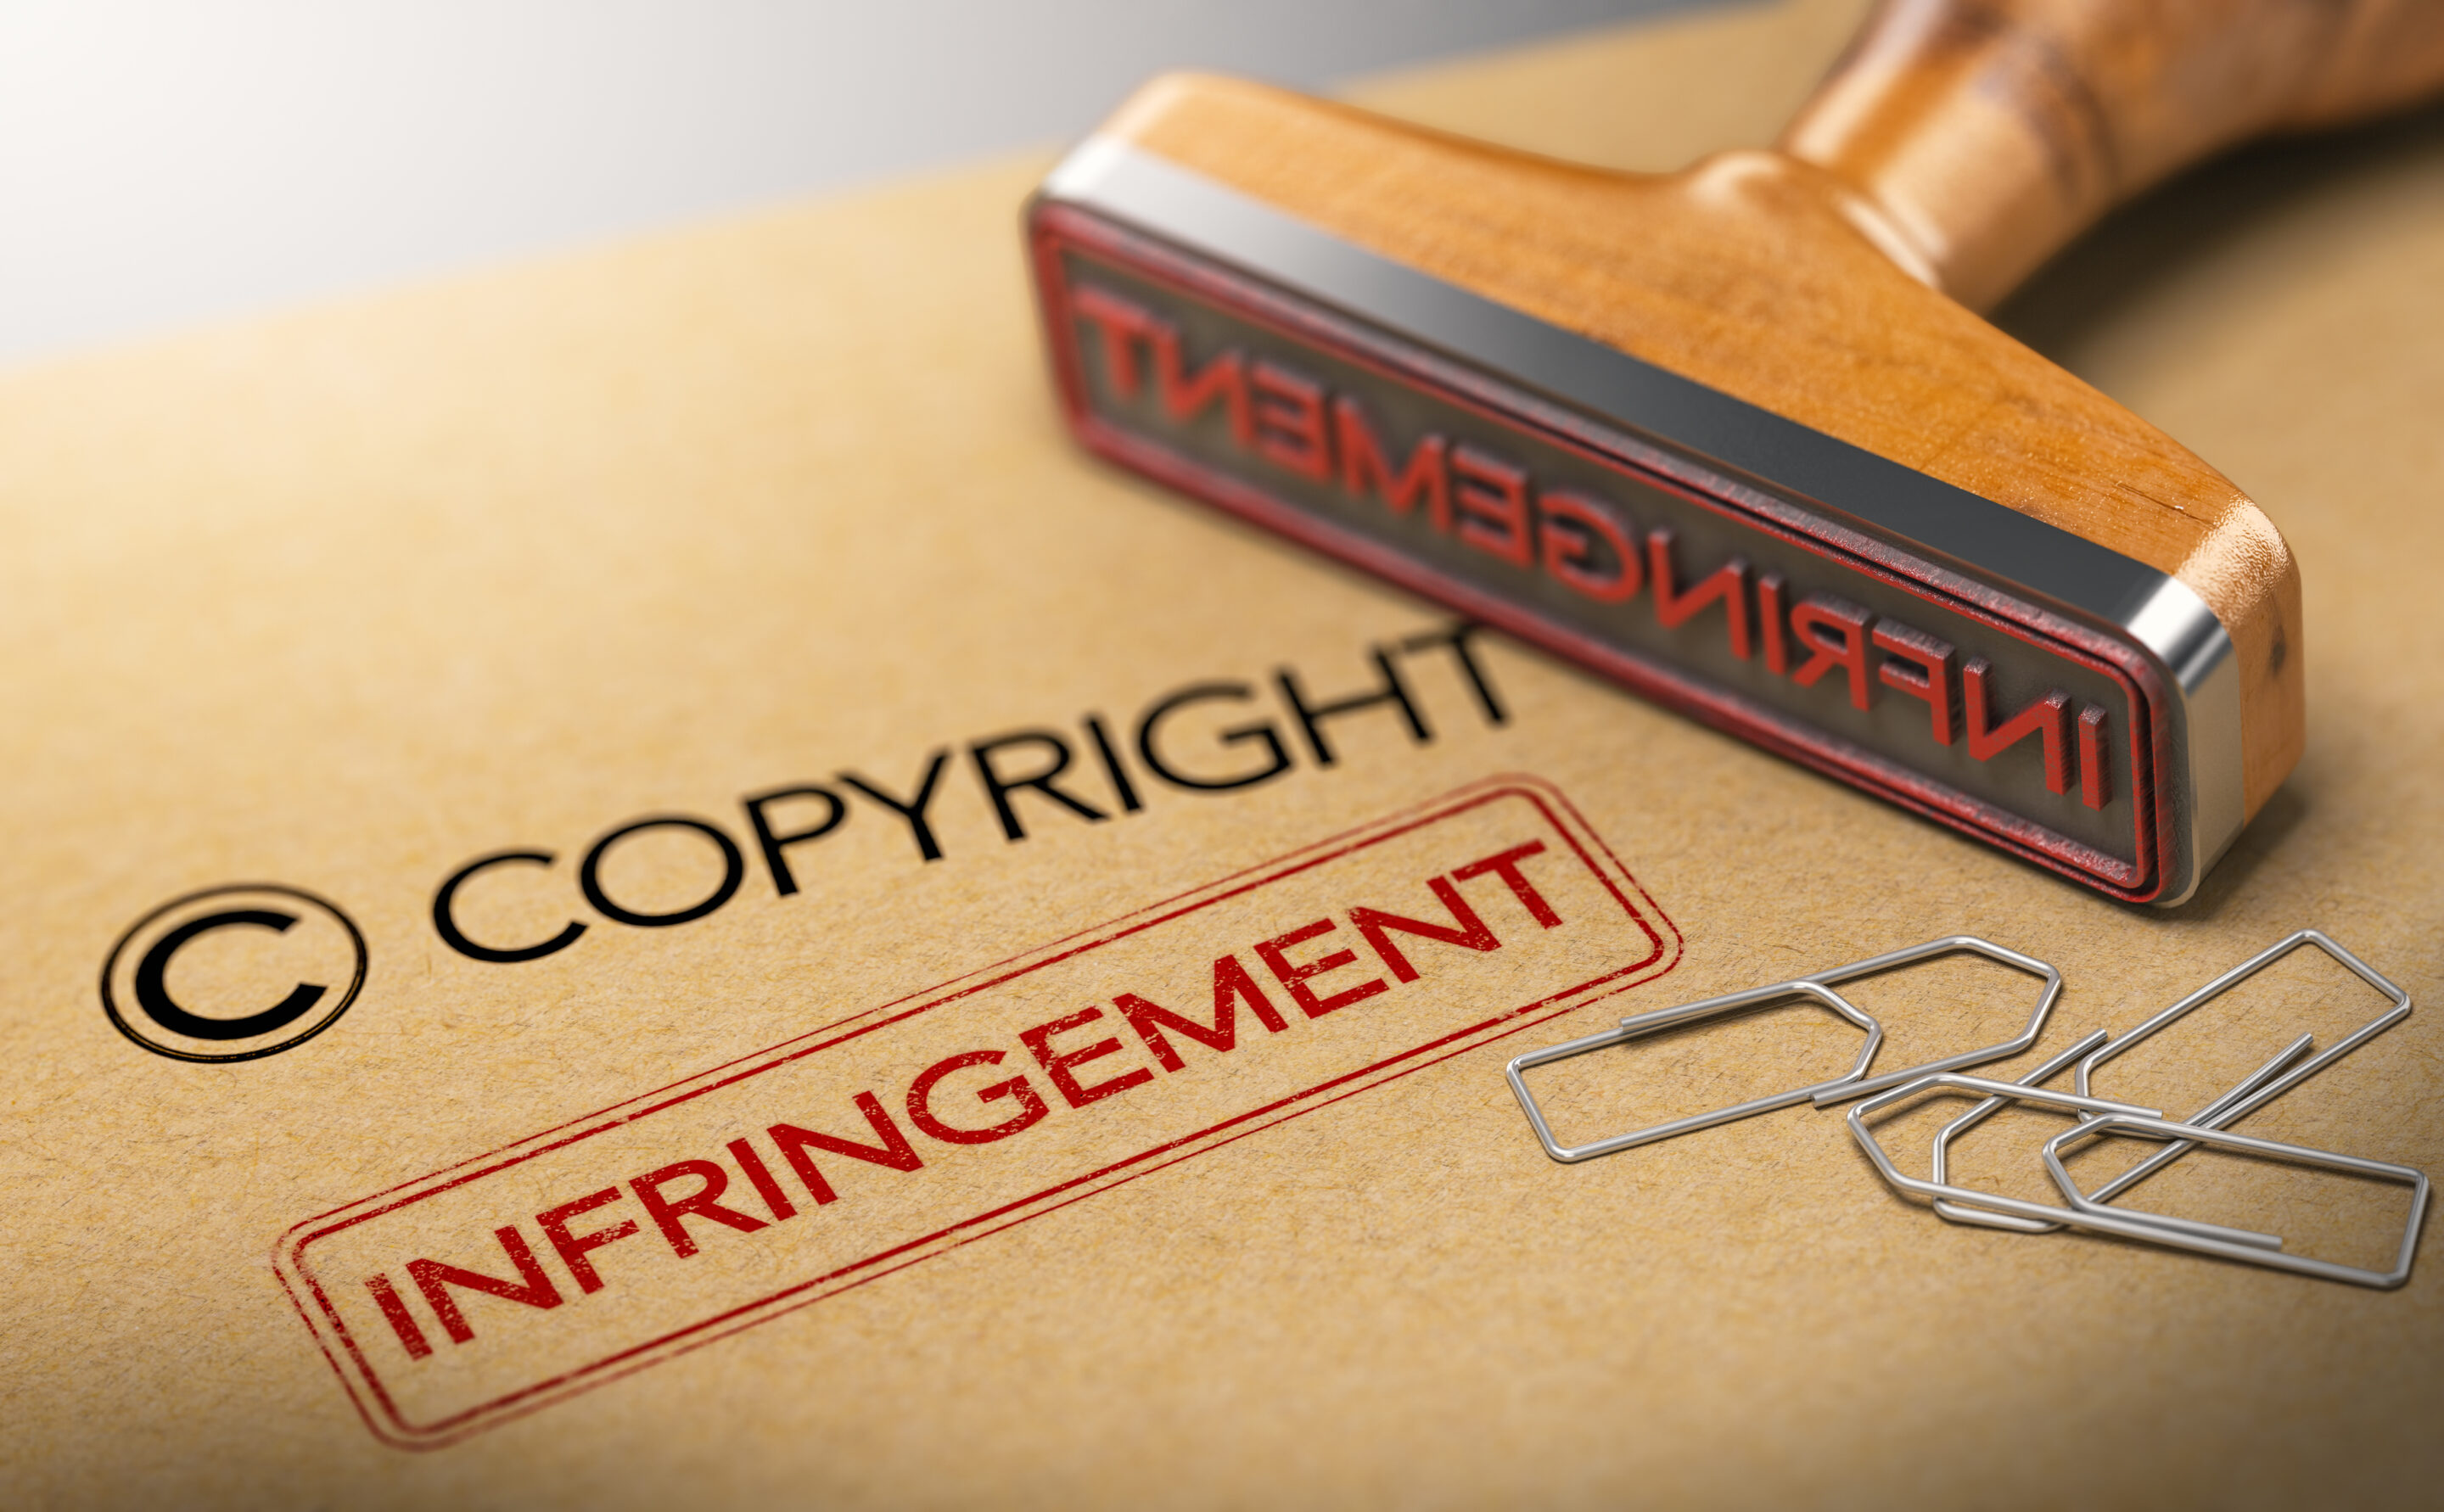 How to Avoid Image Copyright Infringement When Blogging